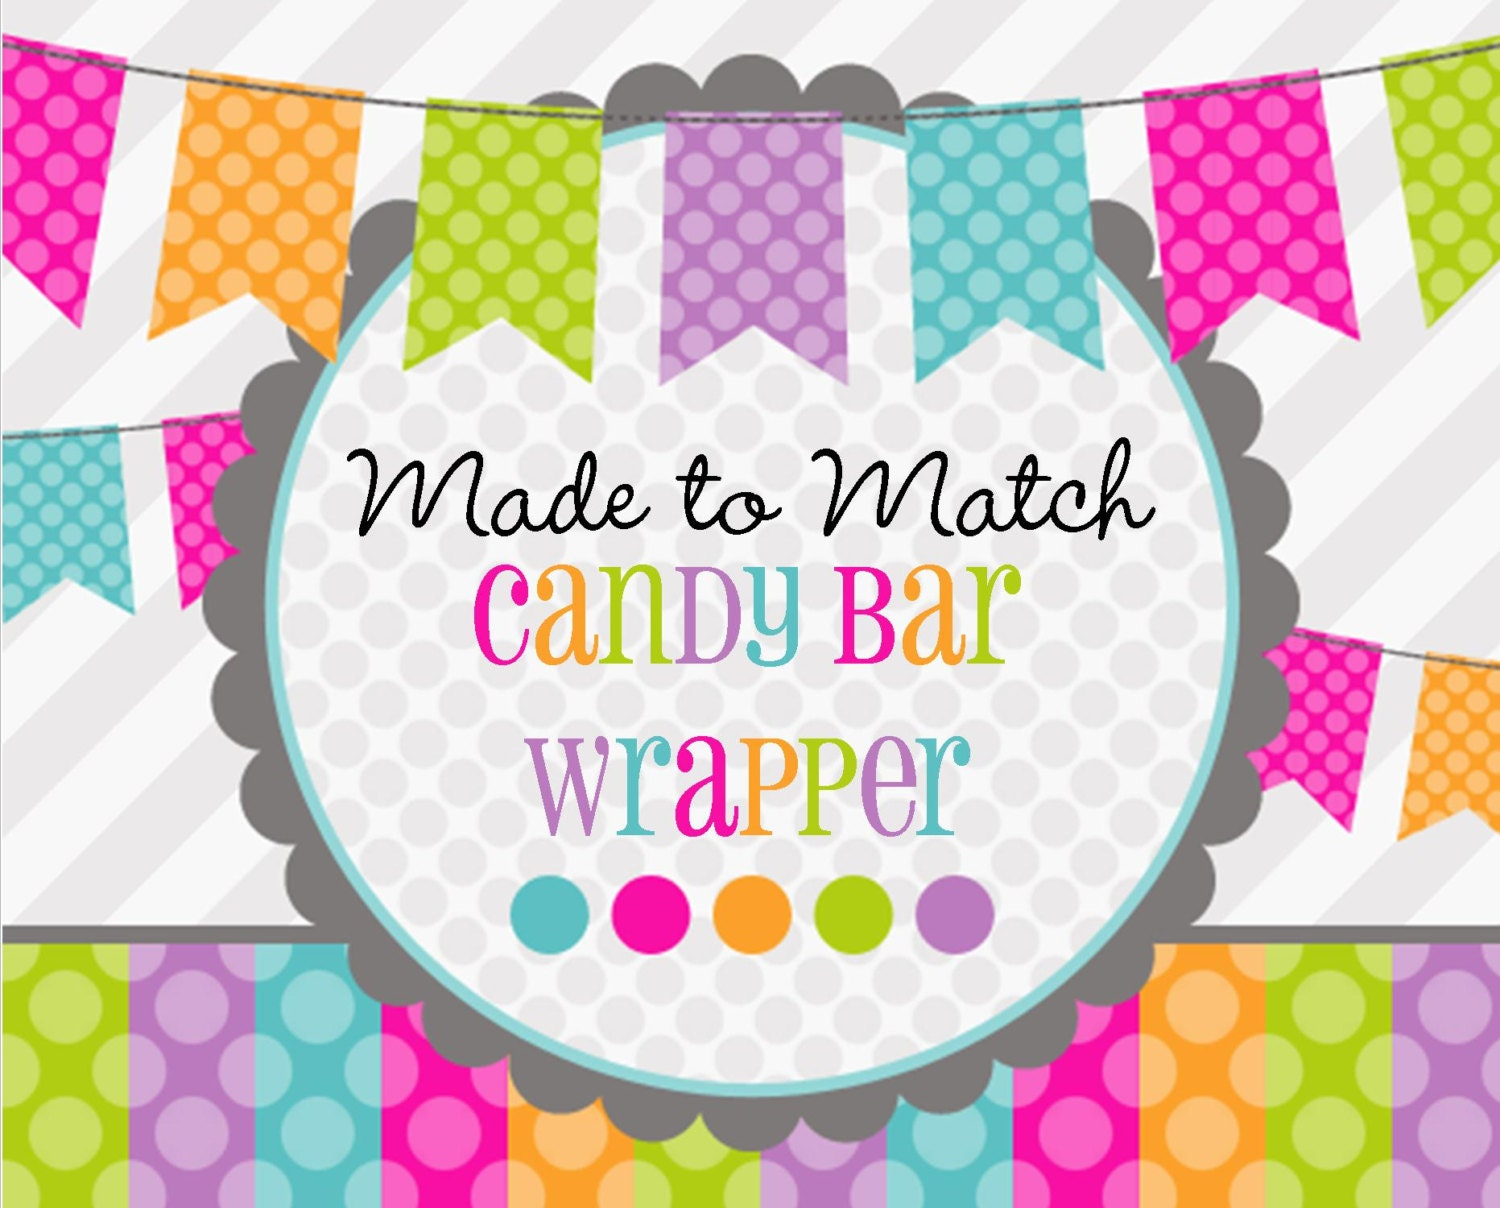 Made 2 match printable candy bar wrapper birthday favors for Candy bar wrappers template for baby shower printable free